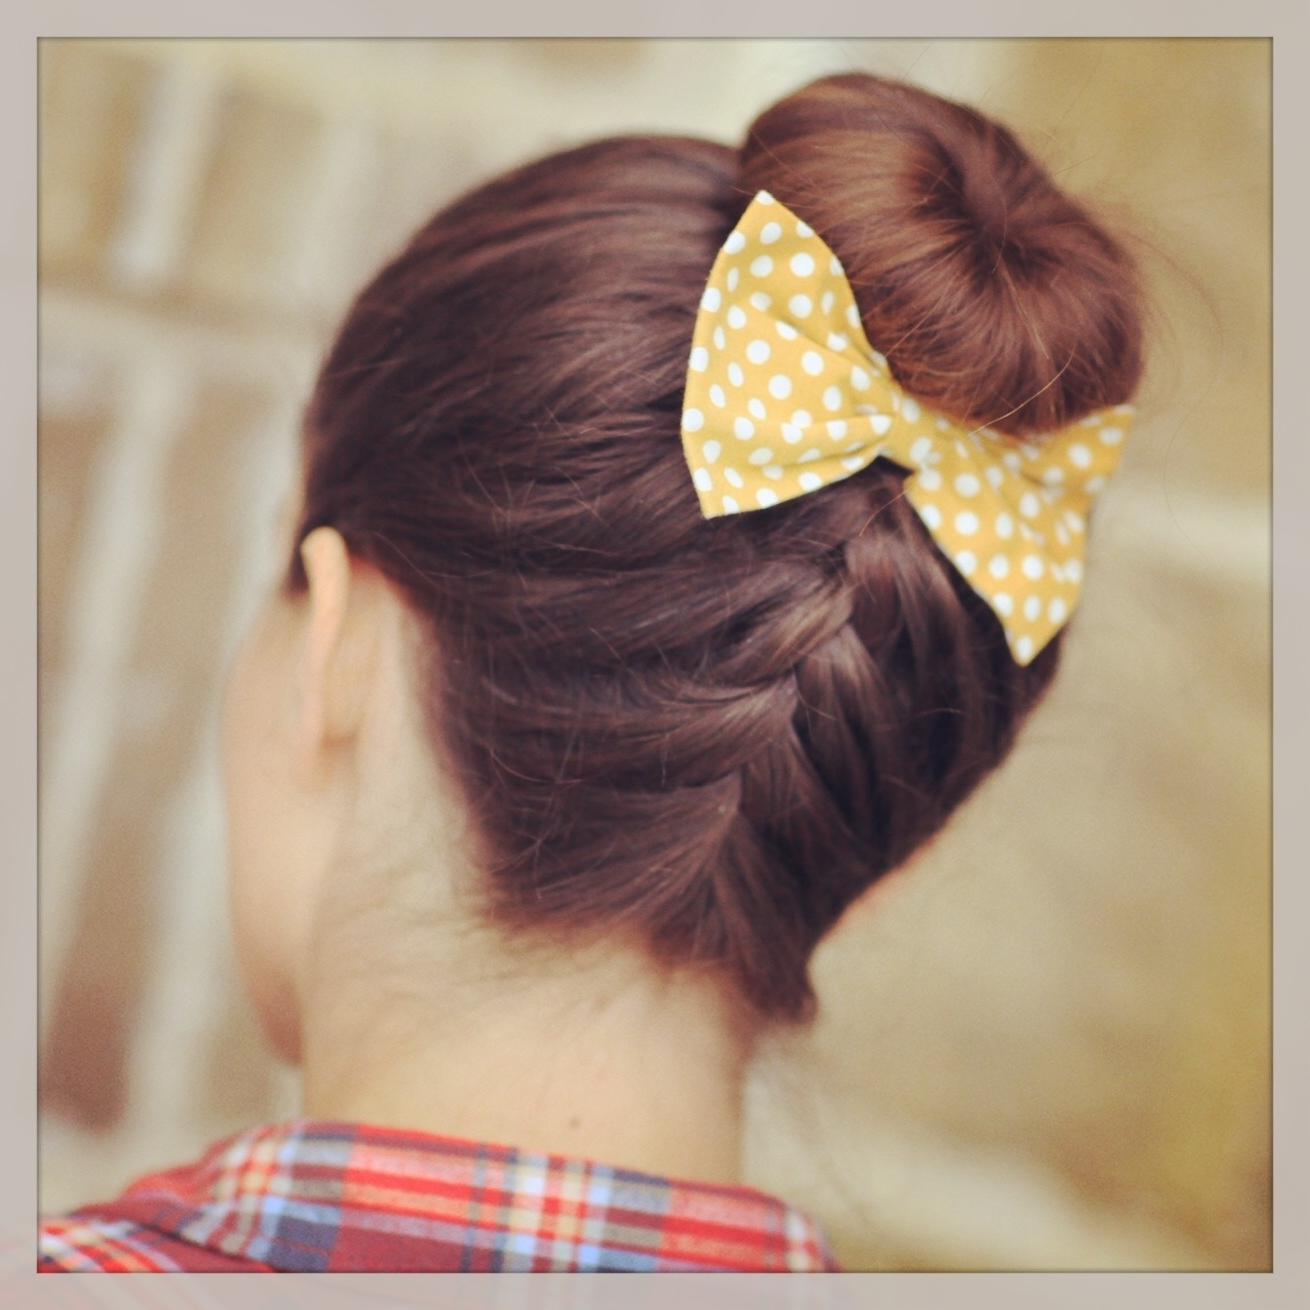 French Up High Bun | Updo Hairstyle Ideas | Cute Girls Hairstyles Pertaining To Braided Bun Updo Hairstyles (View 11 of 15)